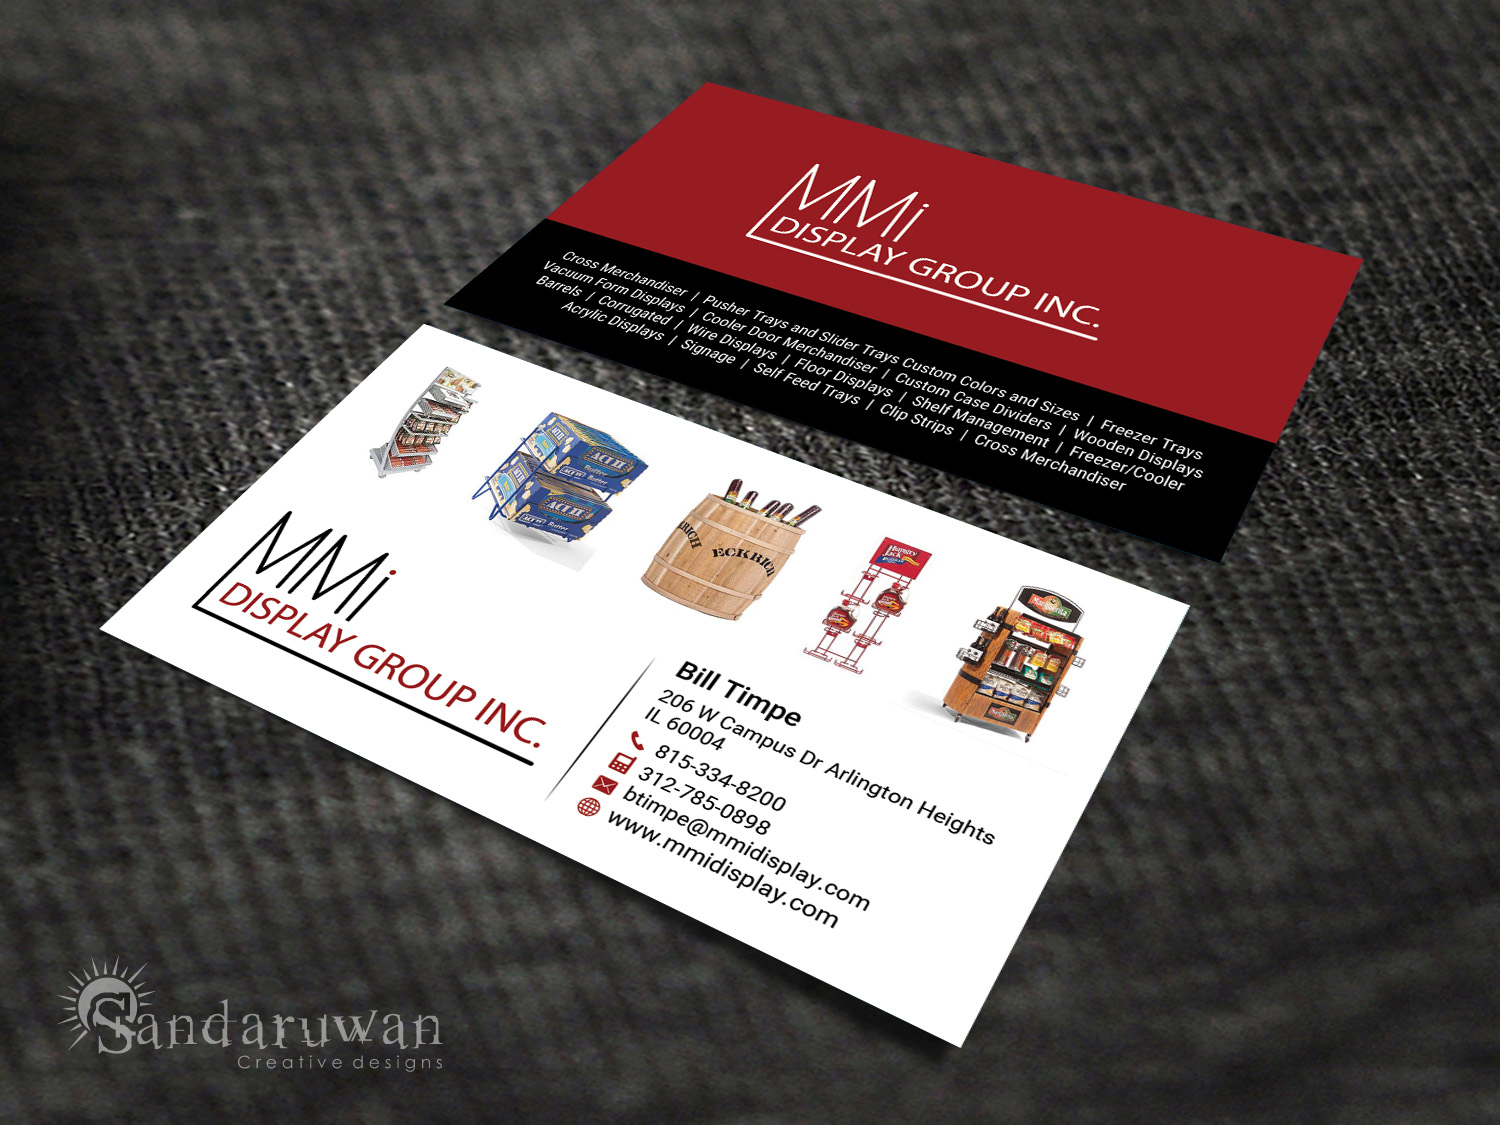 Bold Serious Business Card Design For MMI DISPLAY GROUP INC In United States